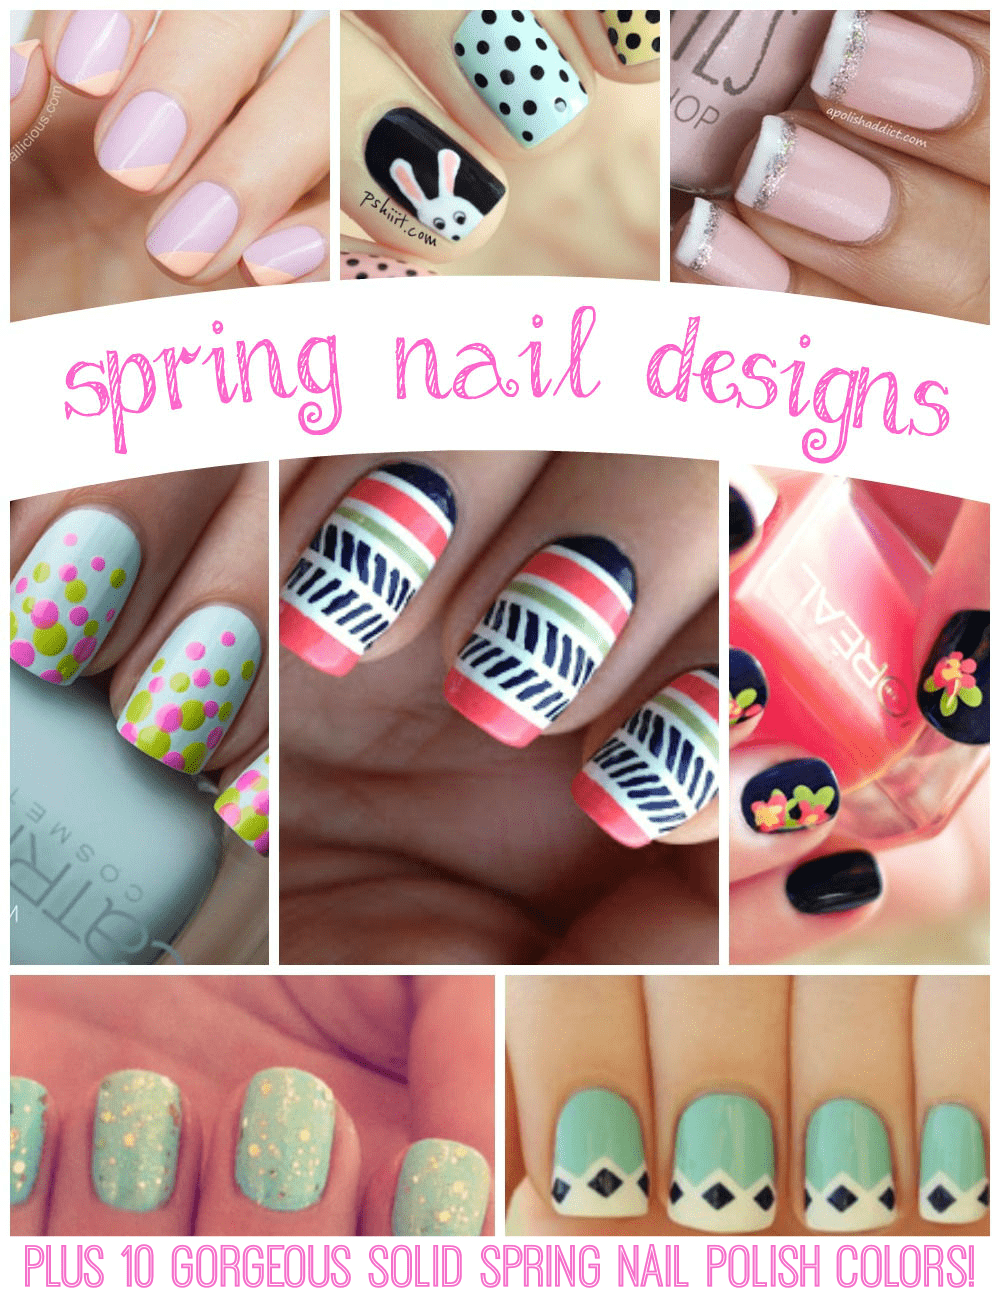 spring nail designs plus 10 gorgeous solid color options